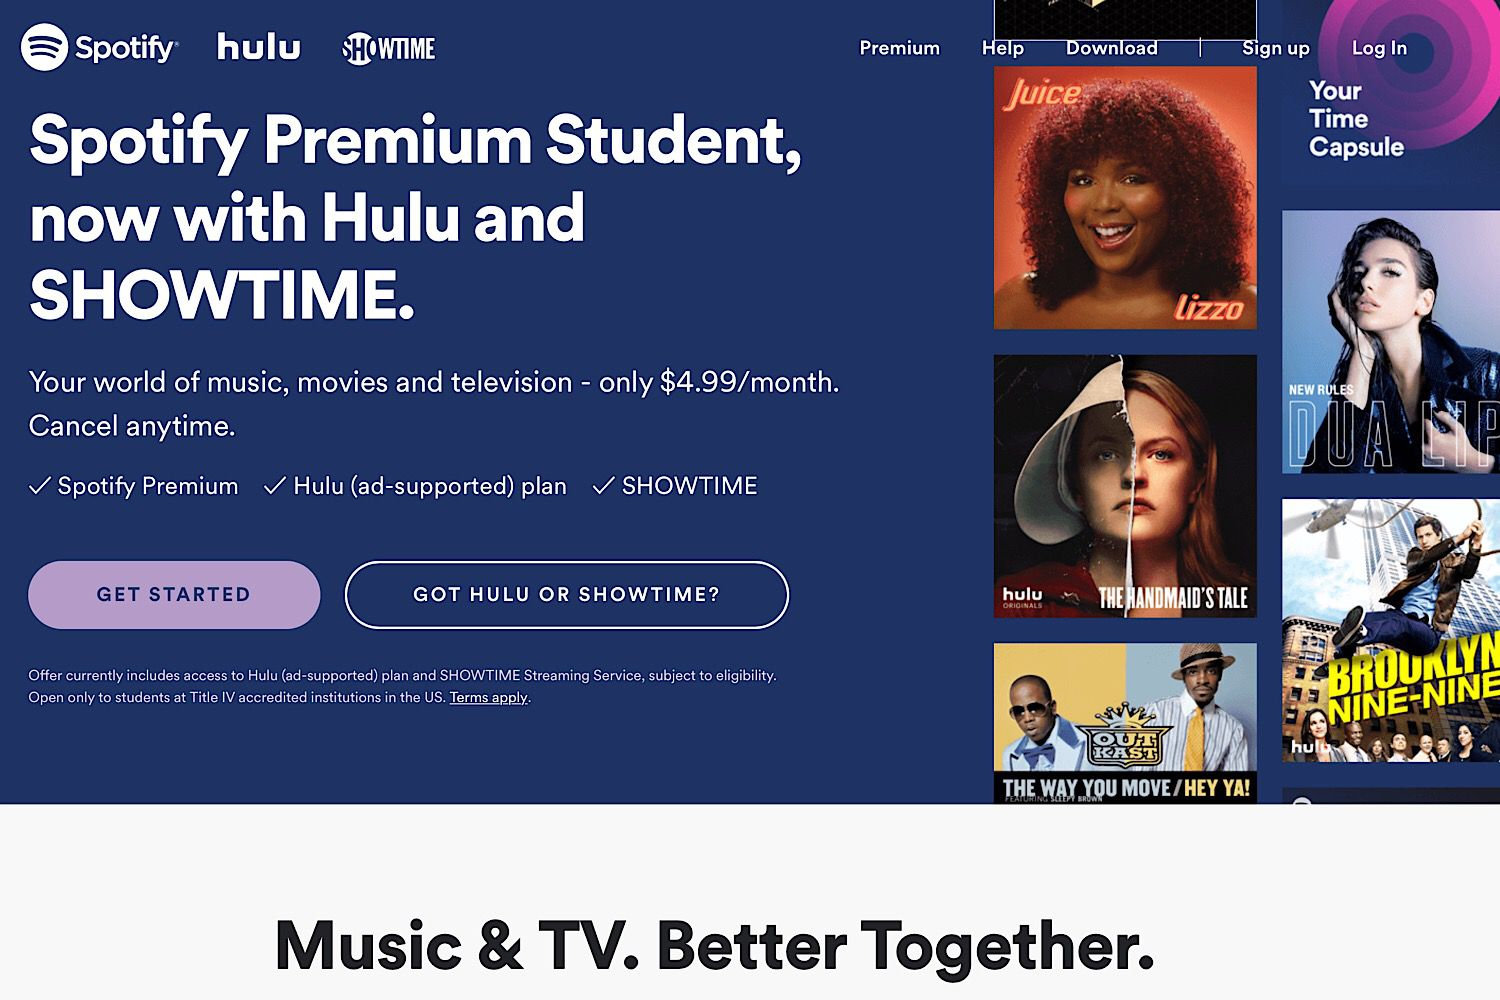 spotify with hulu and showtime